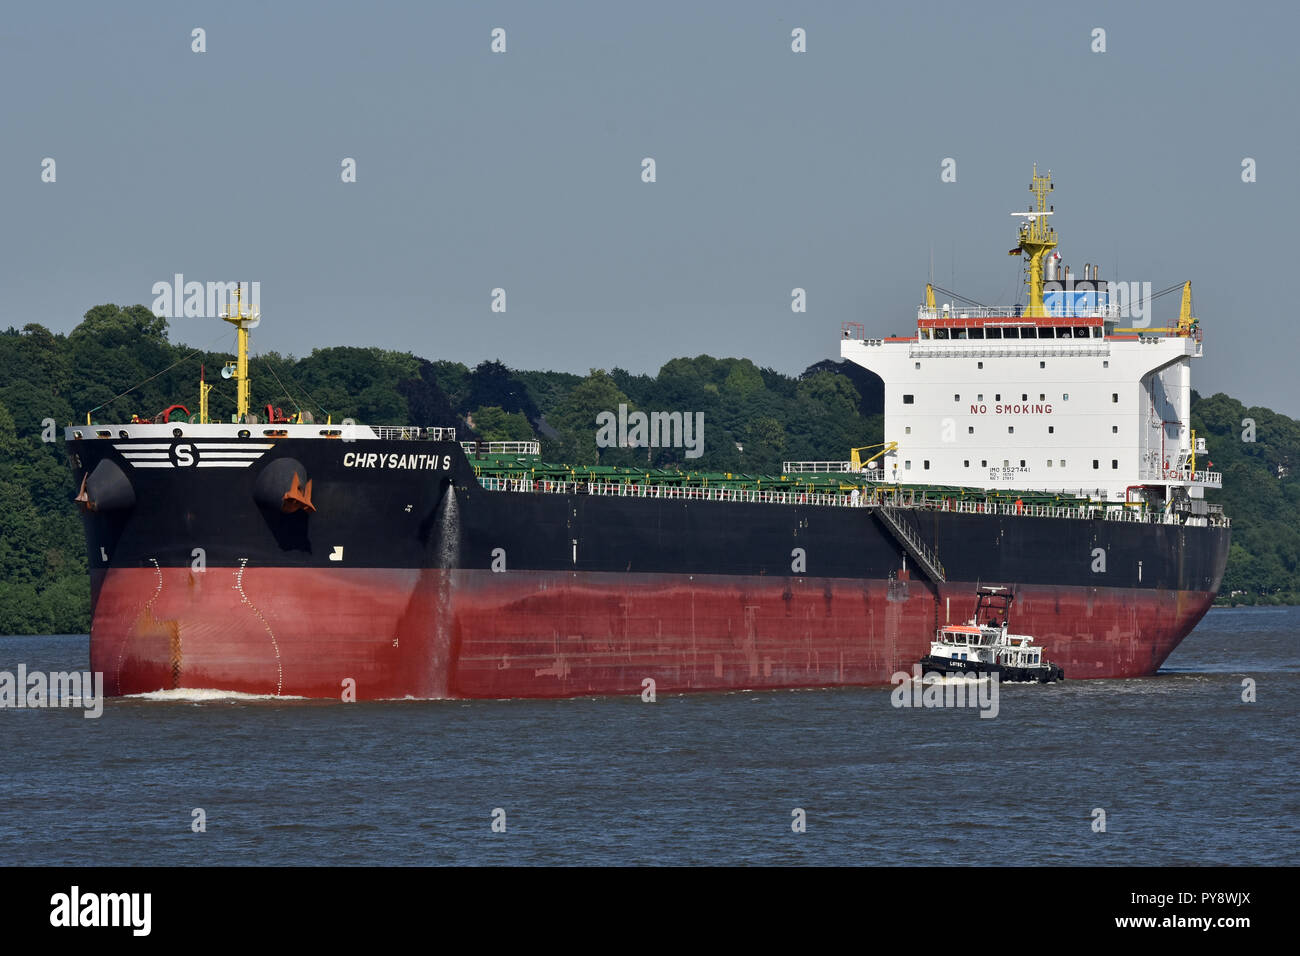 Bulkcarrier Chrysanthi S Stock Photo